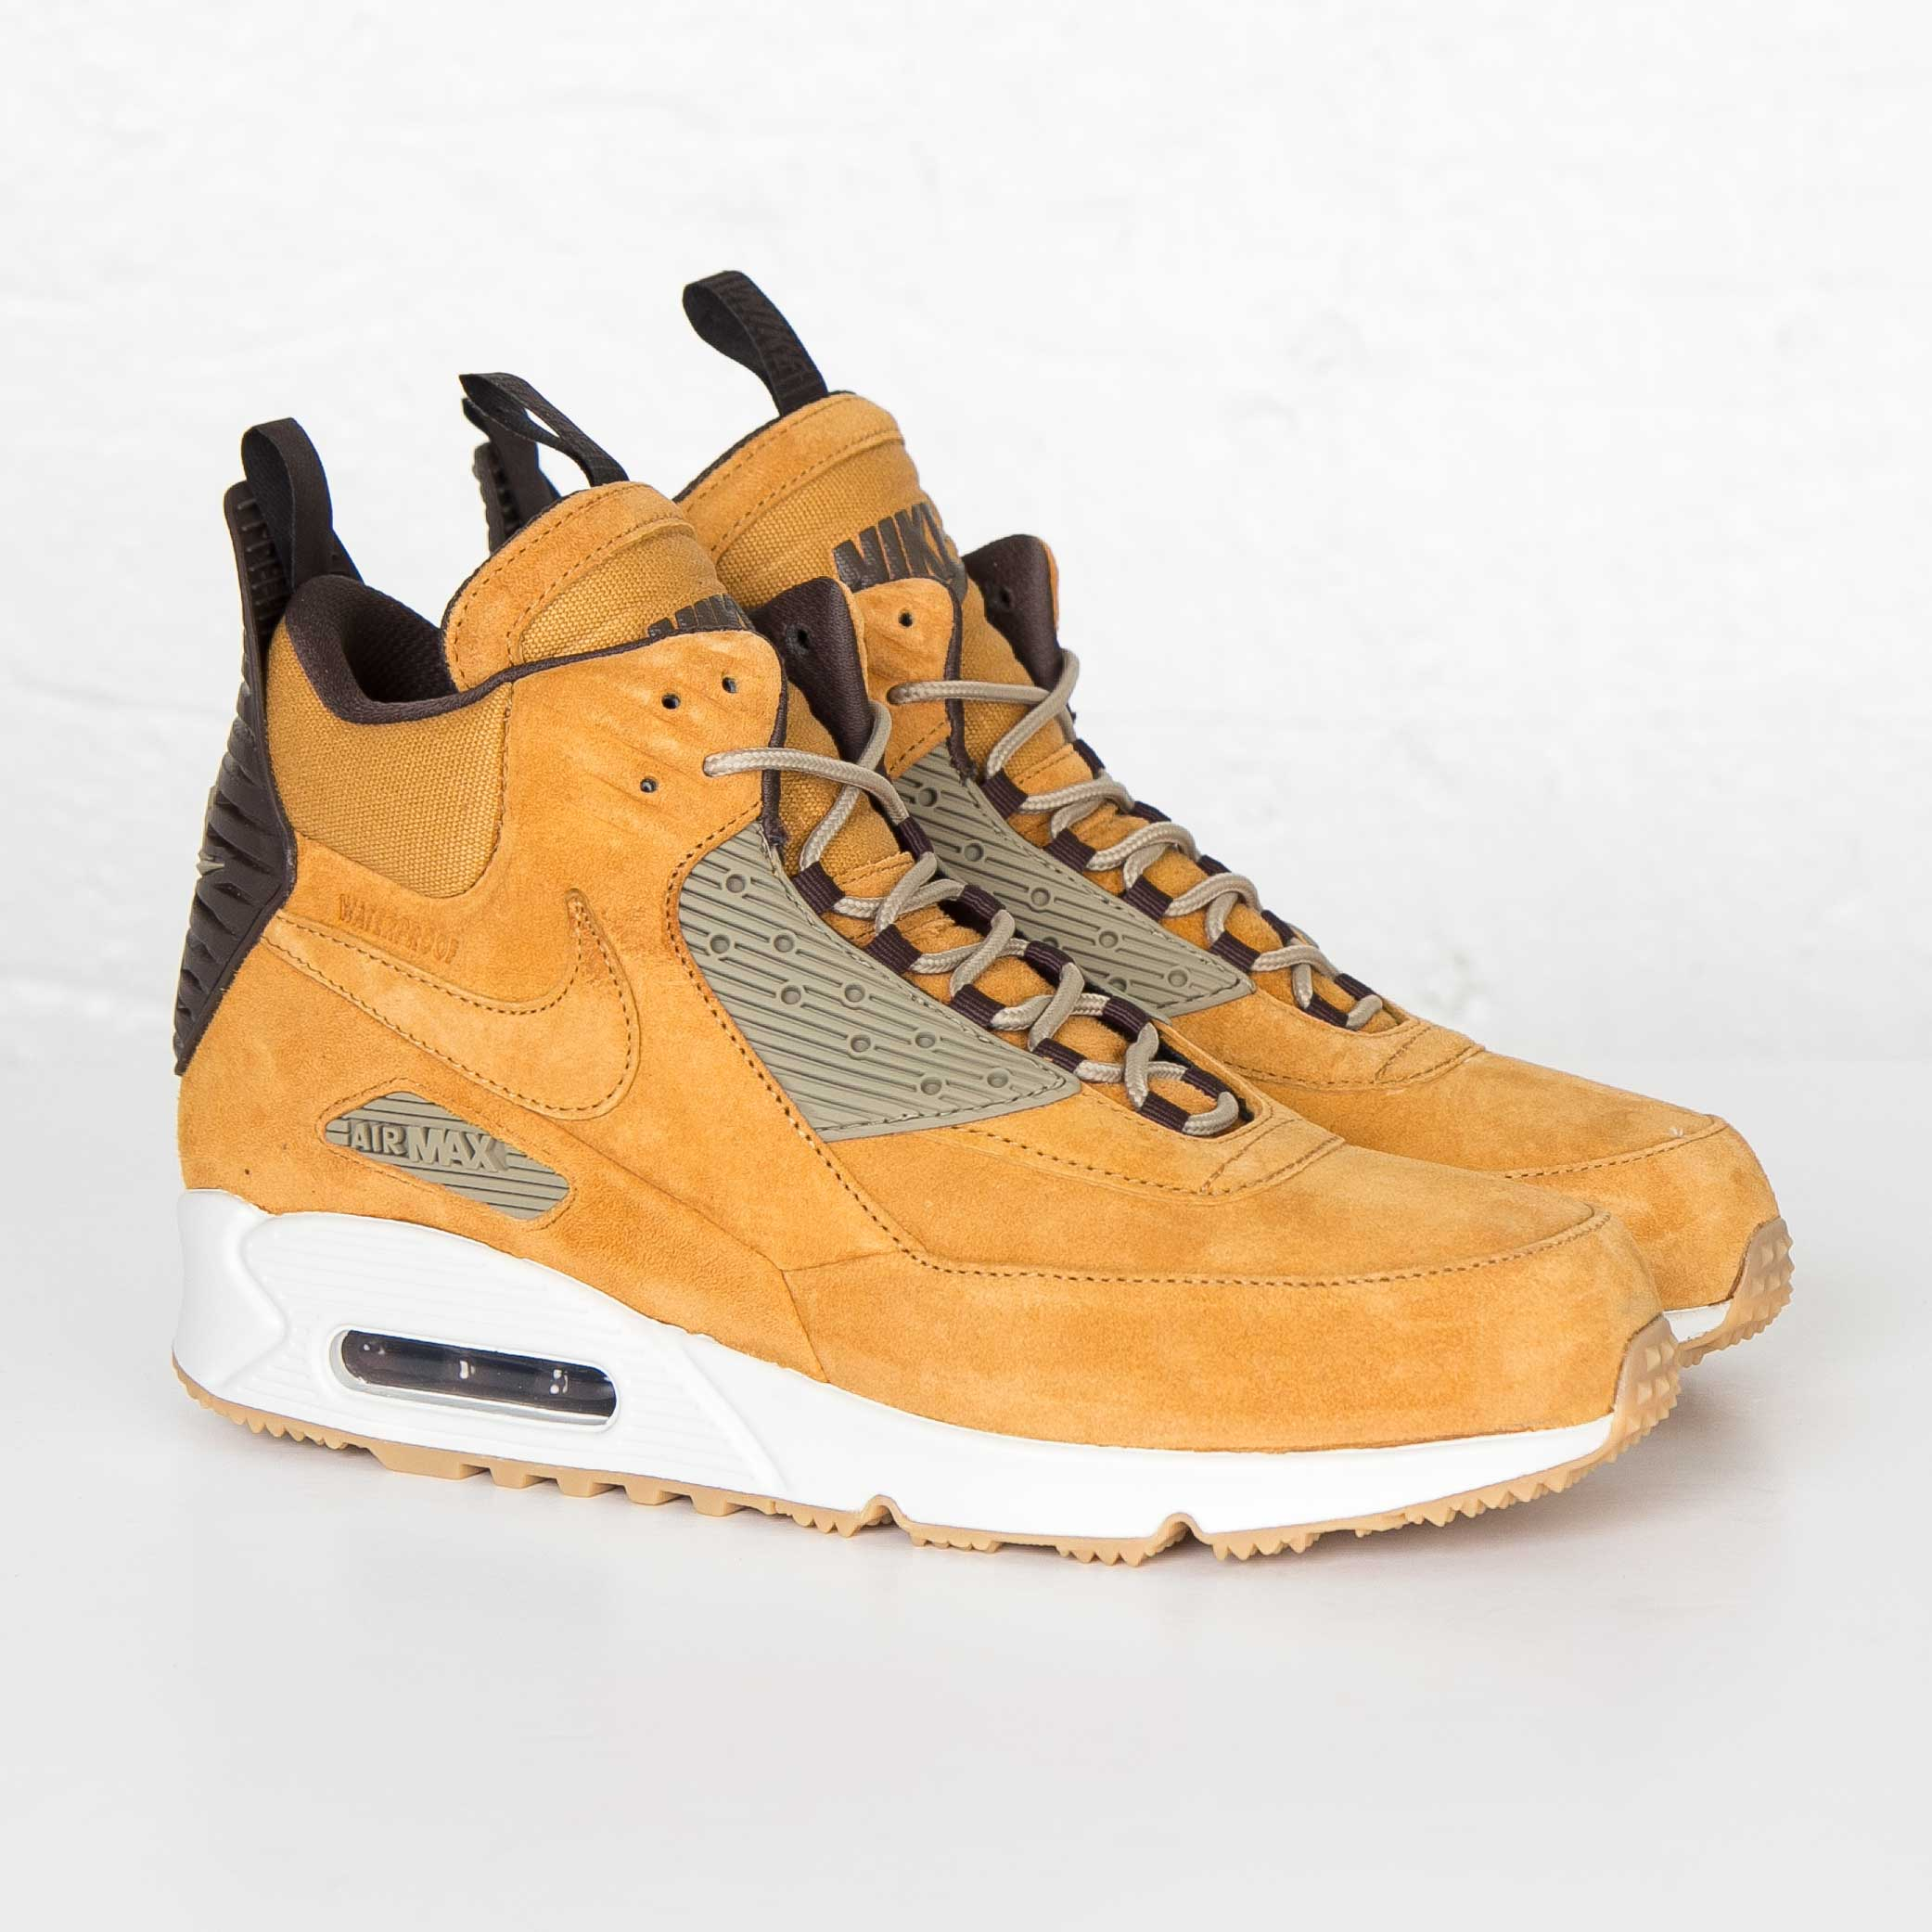 factory authentic f25a4 97a74 Nike Air Max 90 Sneakerboot Winter